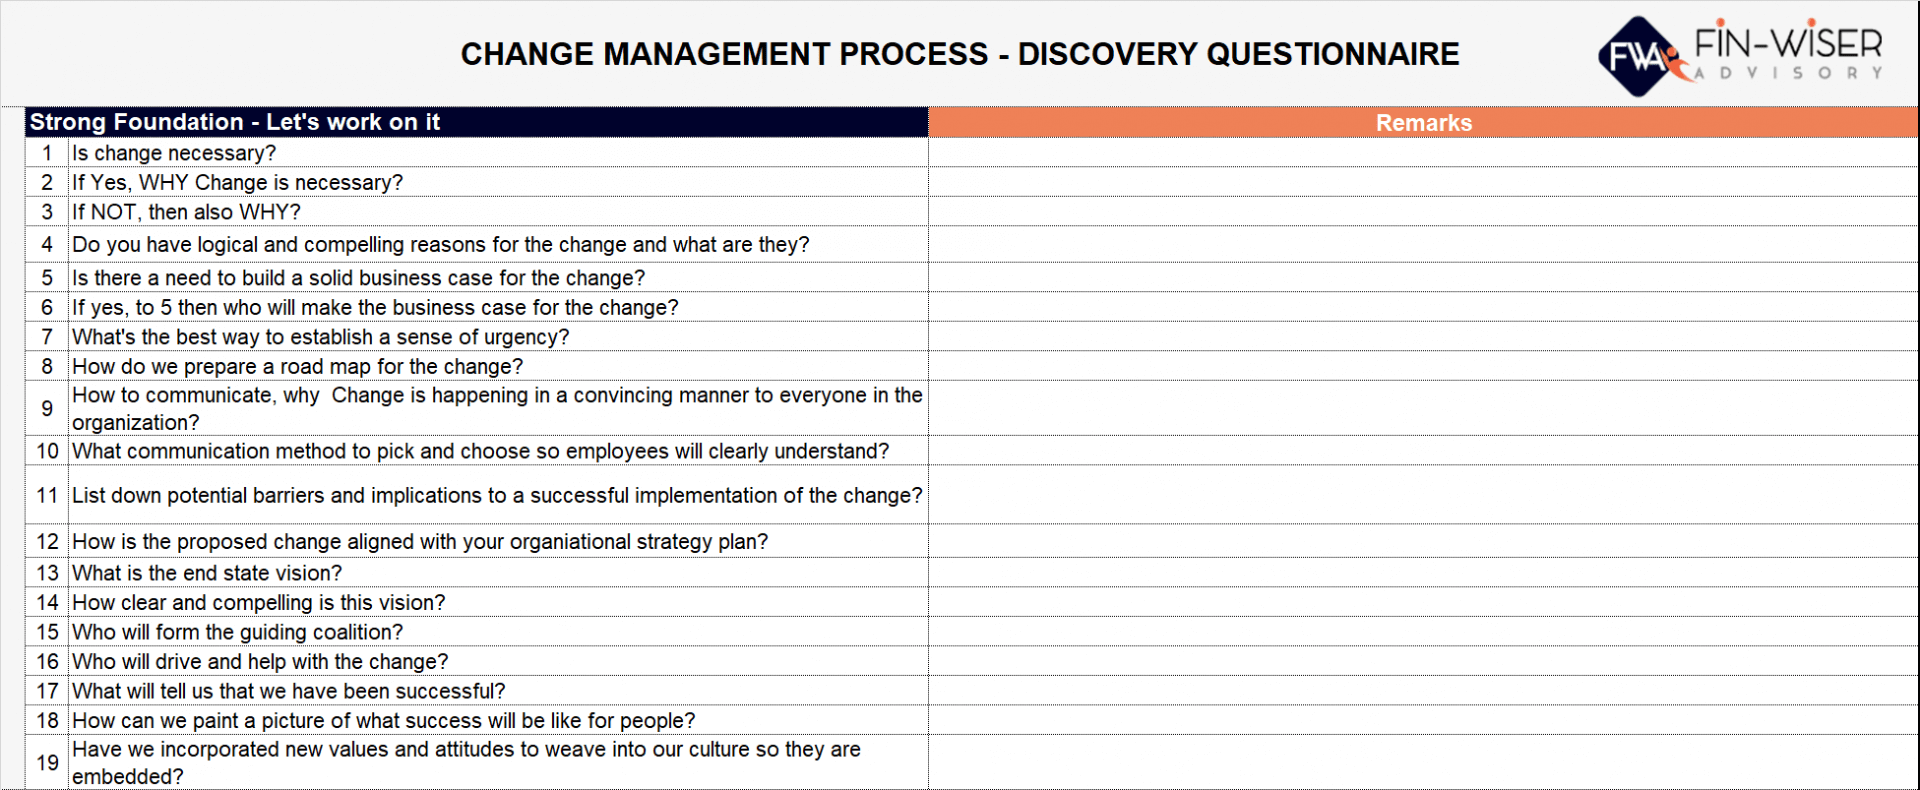 change management process discovery questionnaire 1